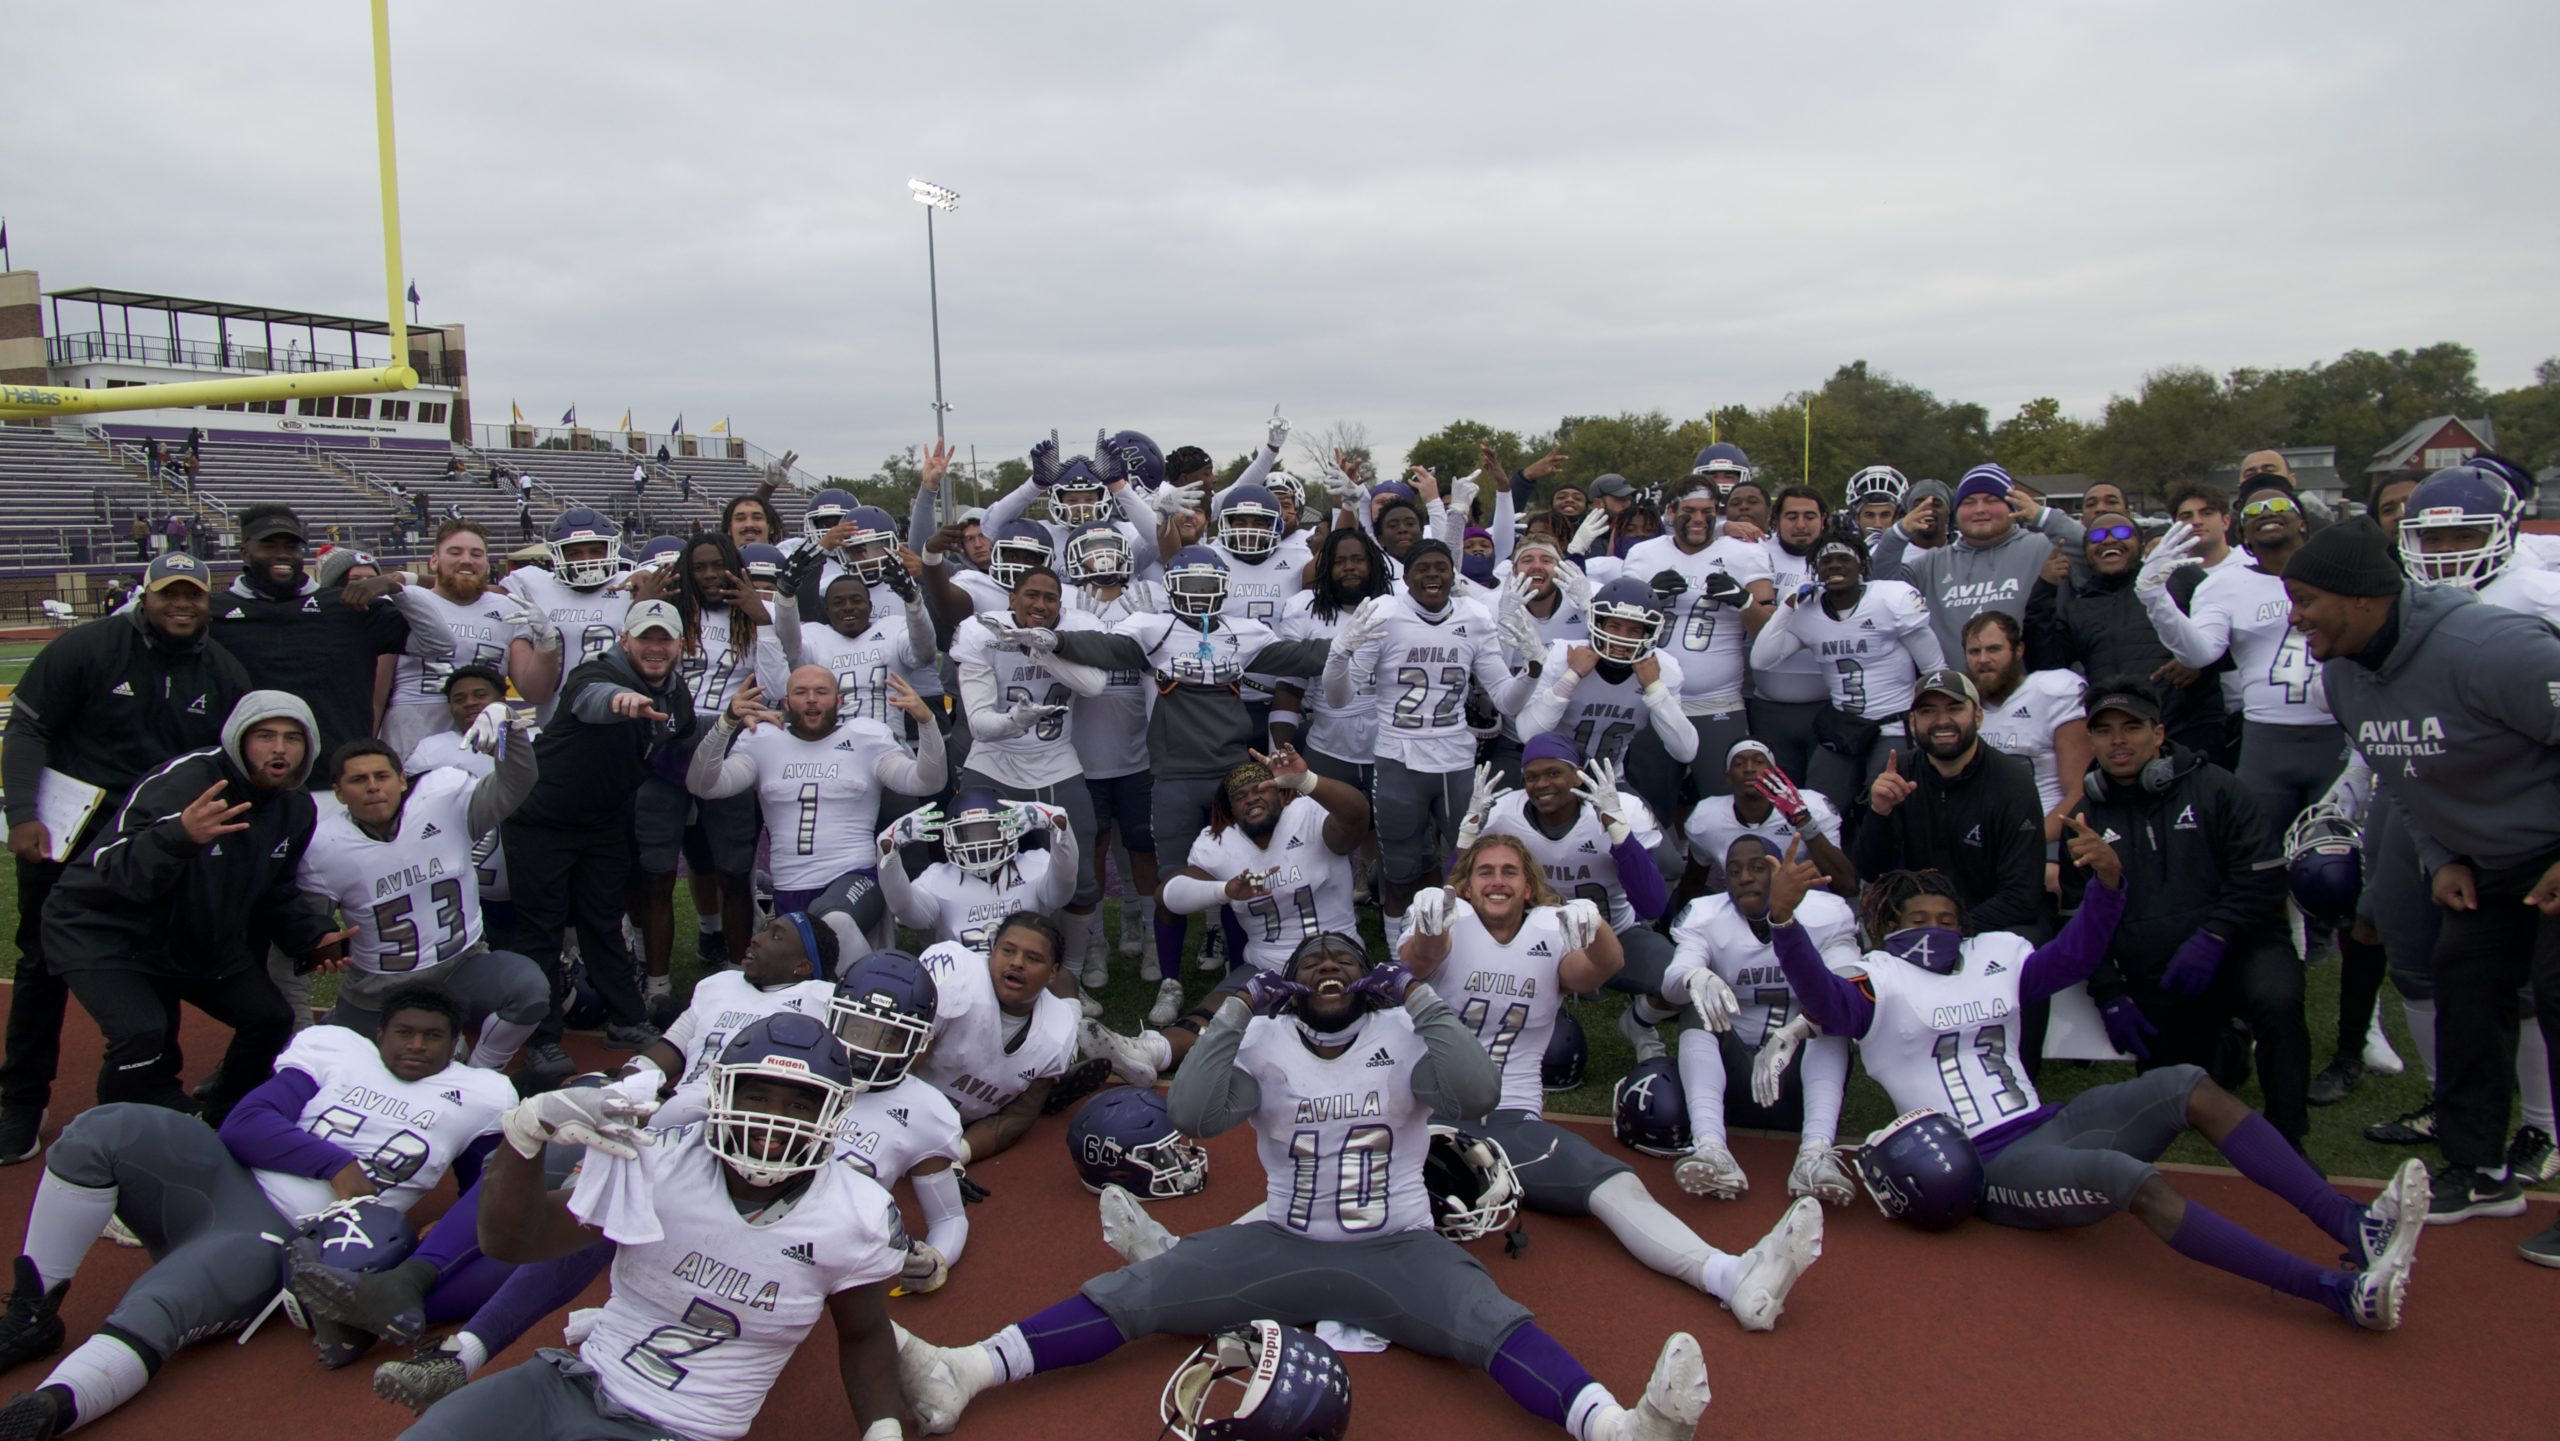 Image of Avila football team celebrating on field after game